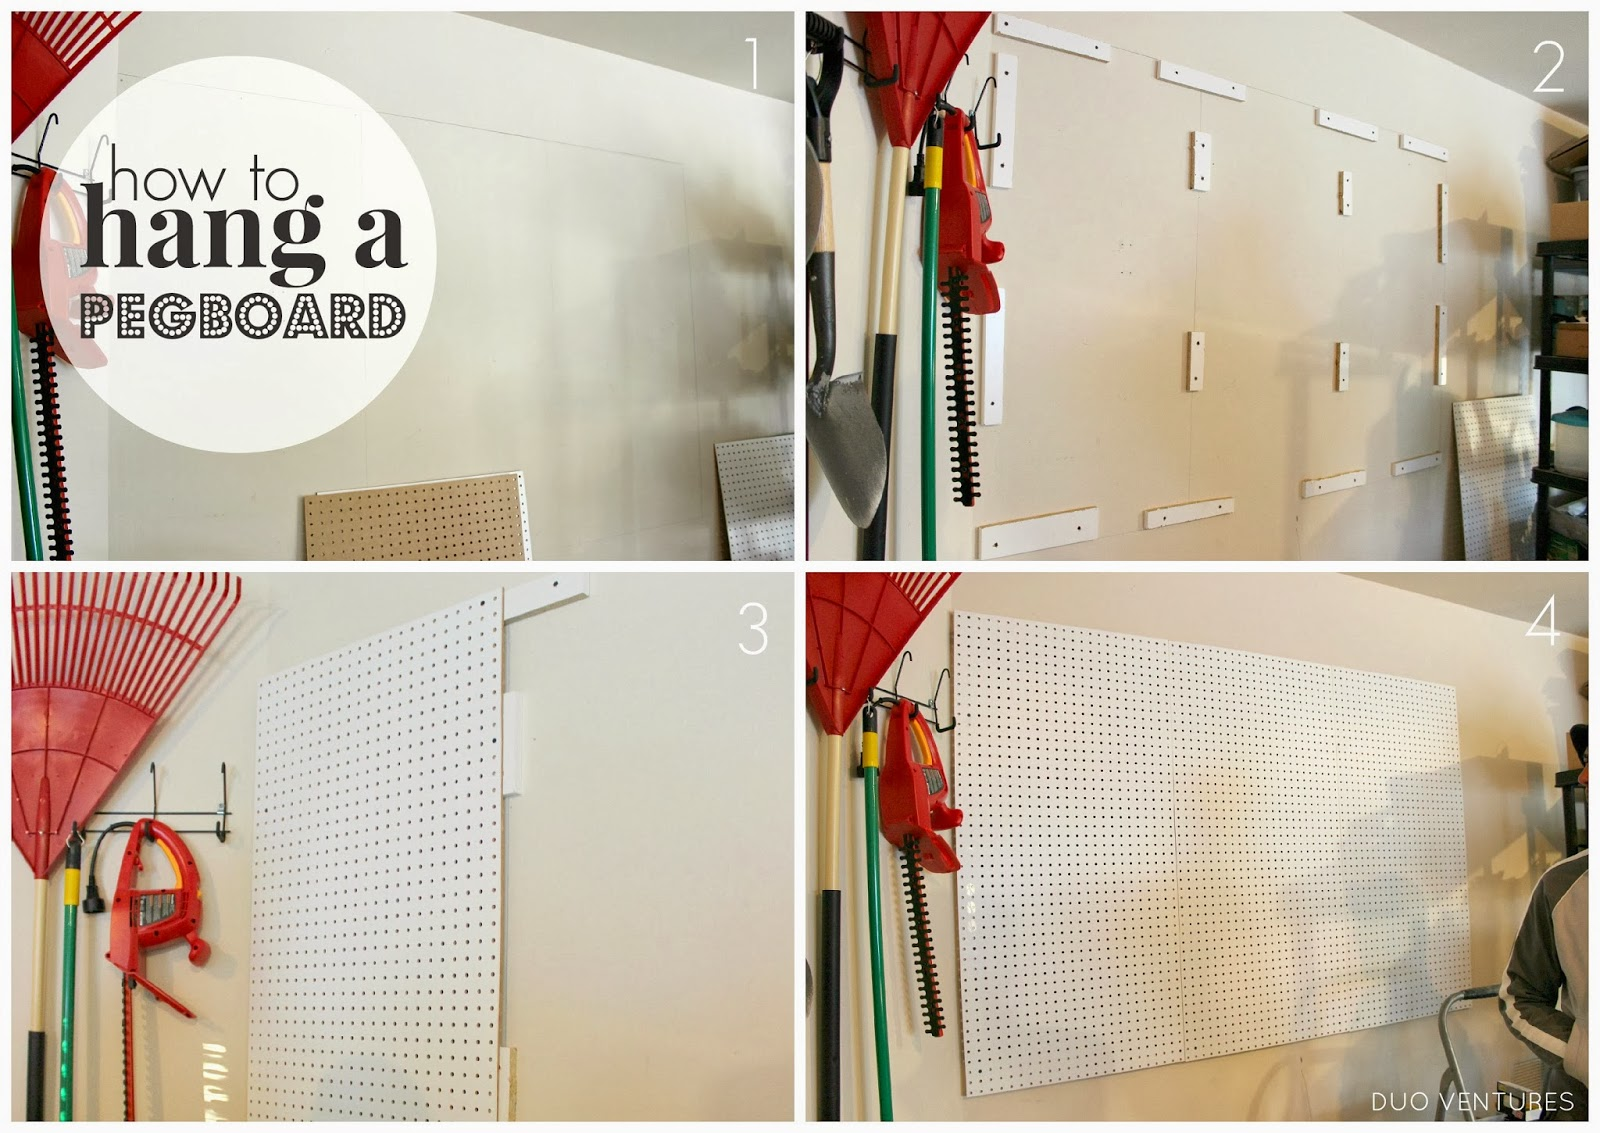 Duo Ventures: How to Hang a Pegboard